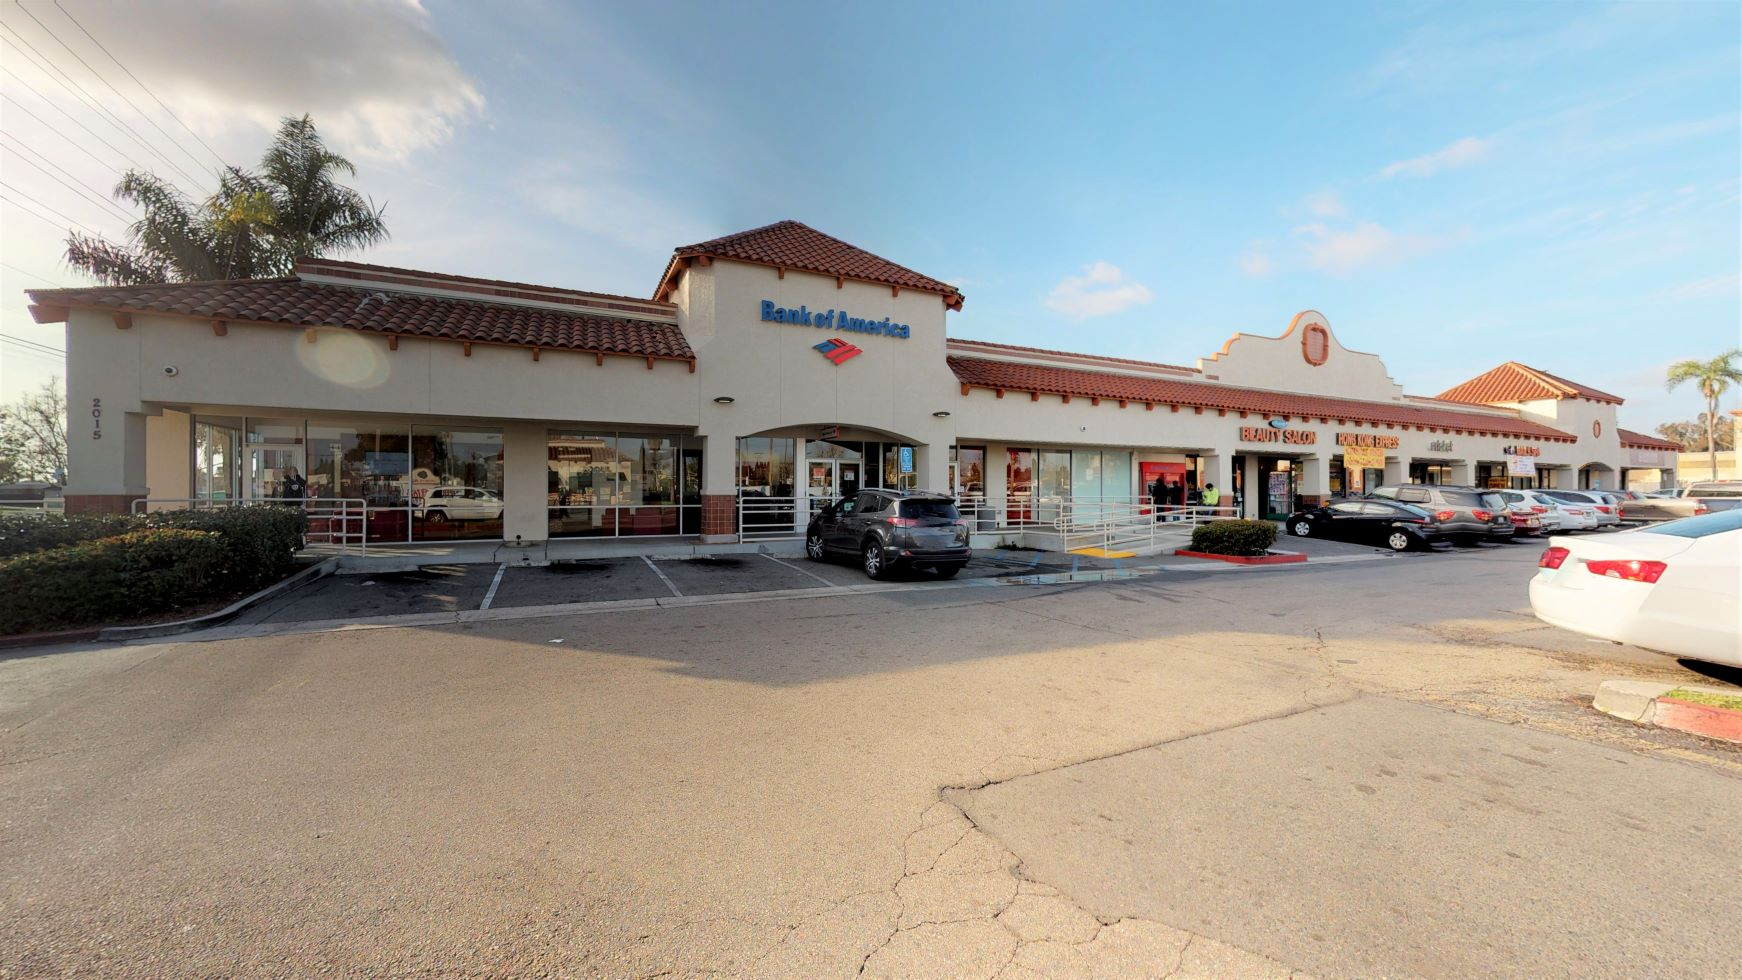 Bank of America financial center with walk-up ATM | 2015 W First St STE A, Santa Ana, CA 92703